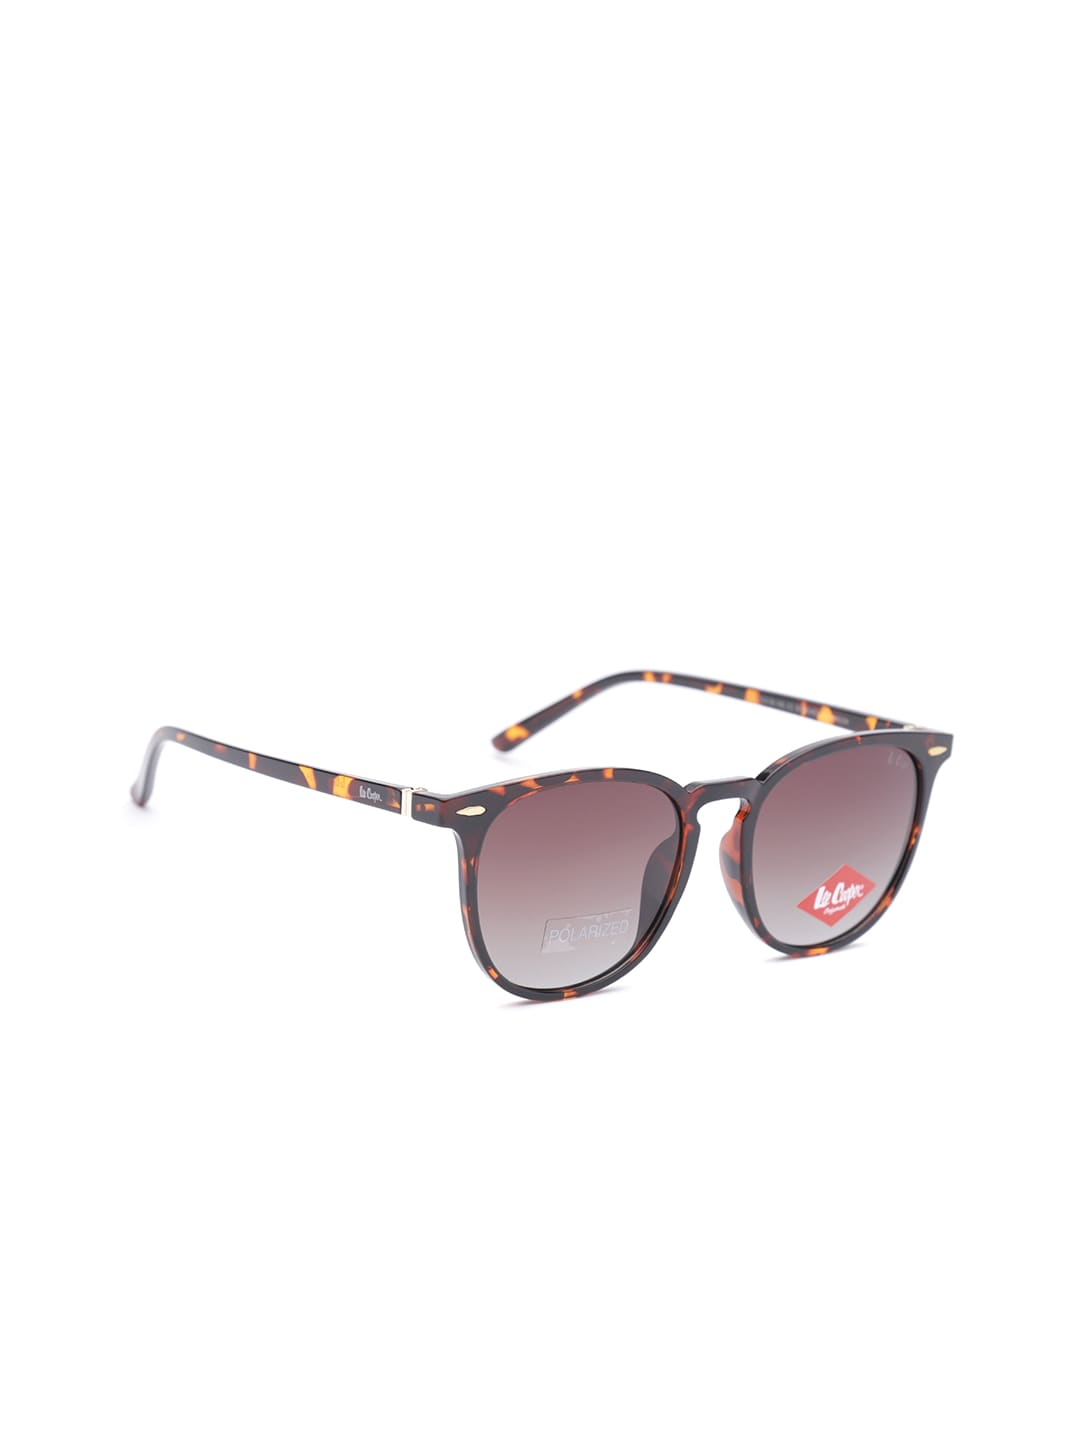 6998accd0ab75 Lee Cooper Eyewear - Buy Lee Cooper Eyewear online in India